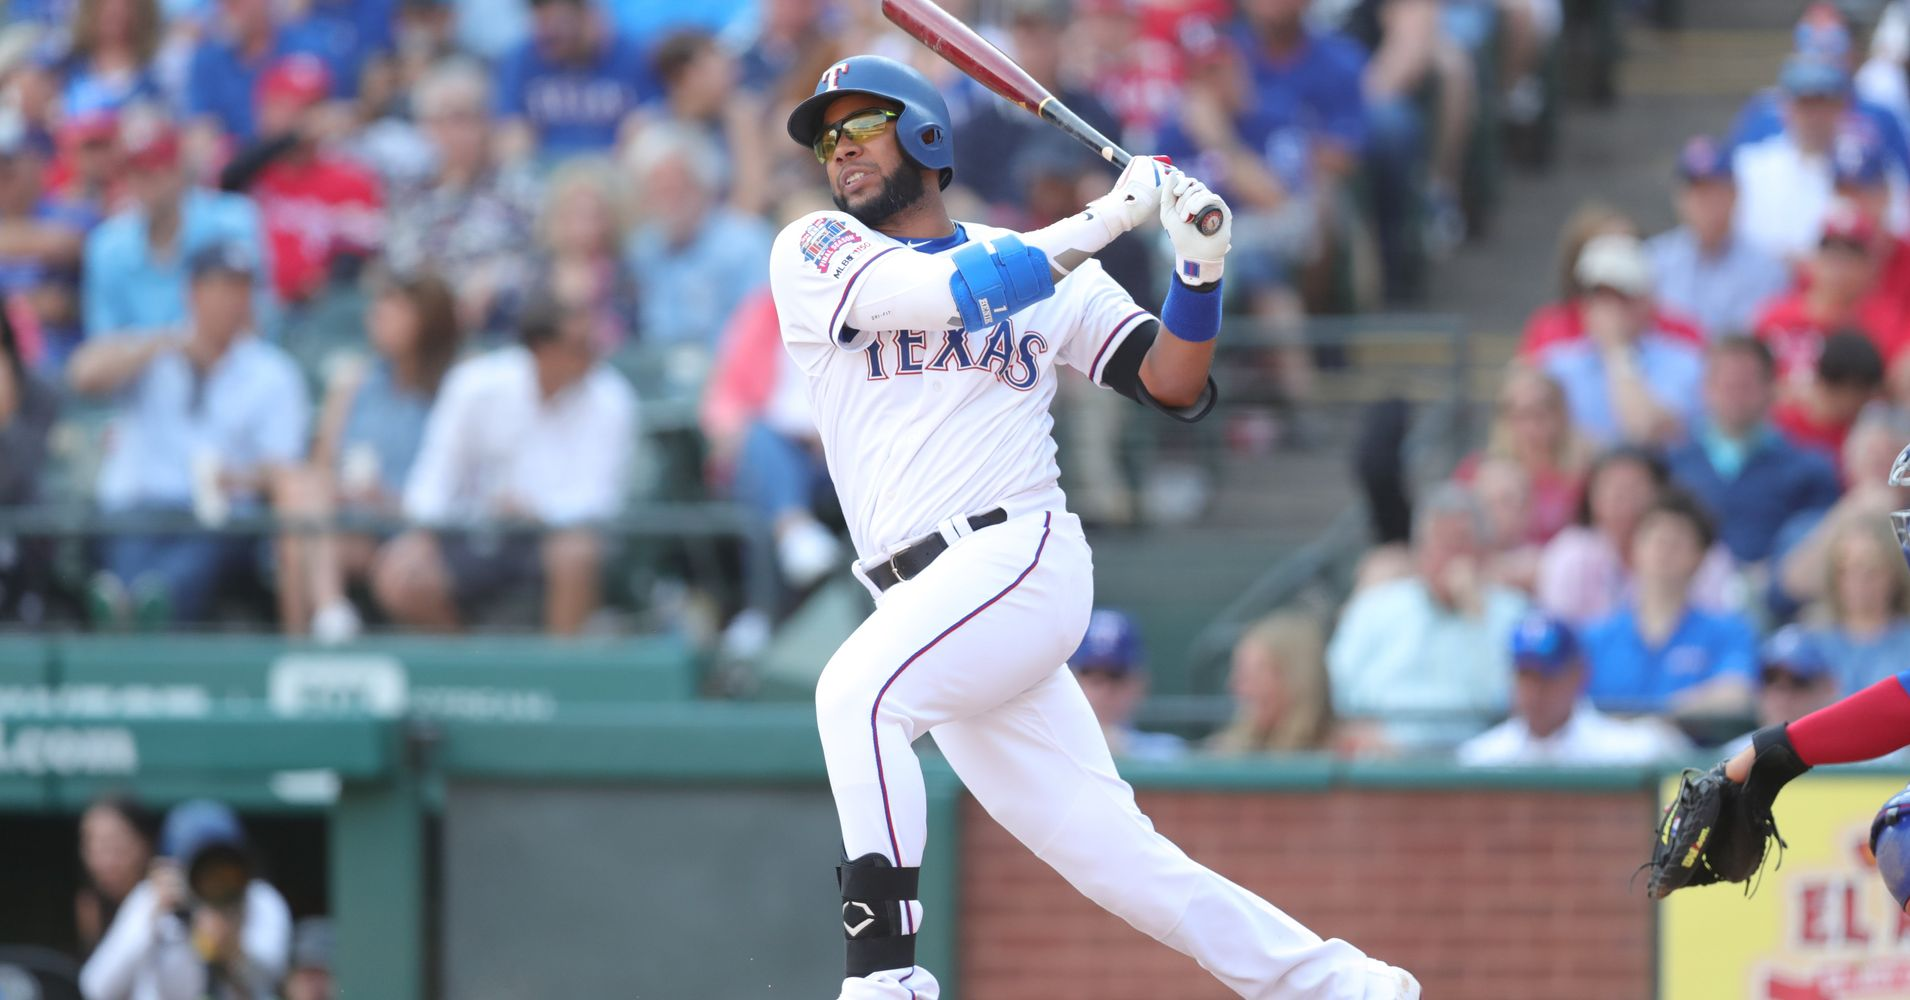 Elvis Andrus Is Using 'Baby Shark' As His Walk-Up Song